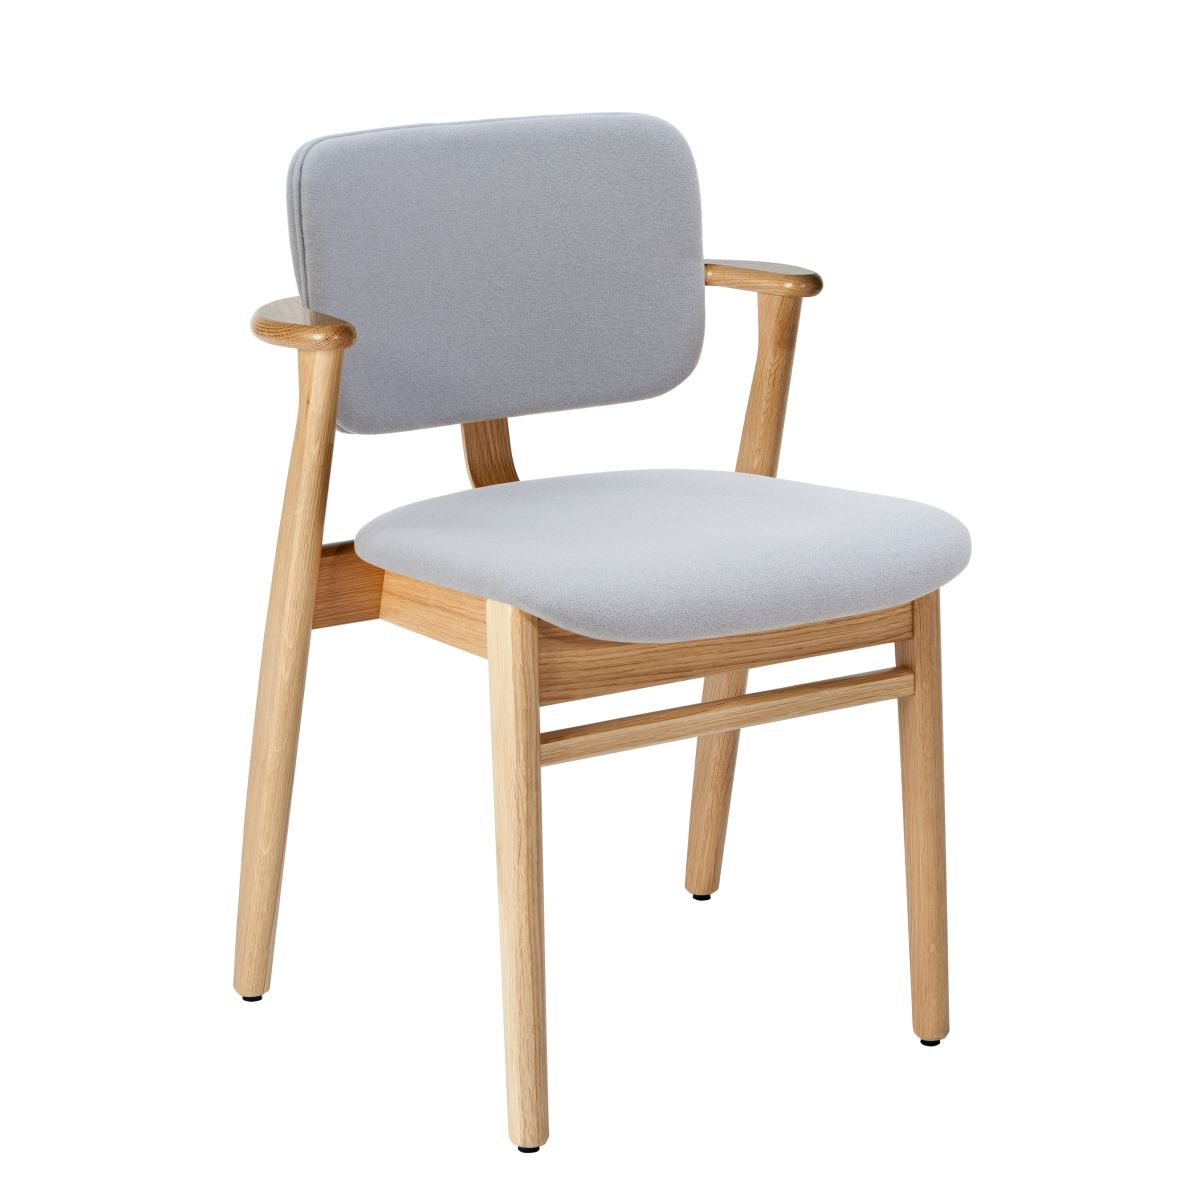 Domus-Chair-legs-clear-laquered-oak_seat-back-fabric-grey-2651005